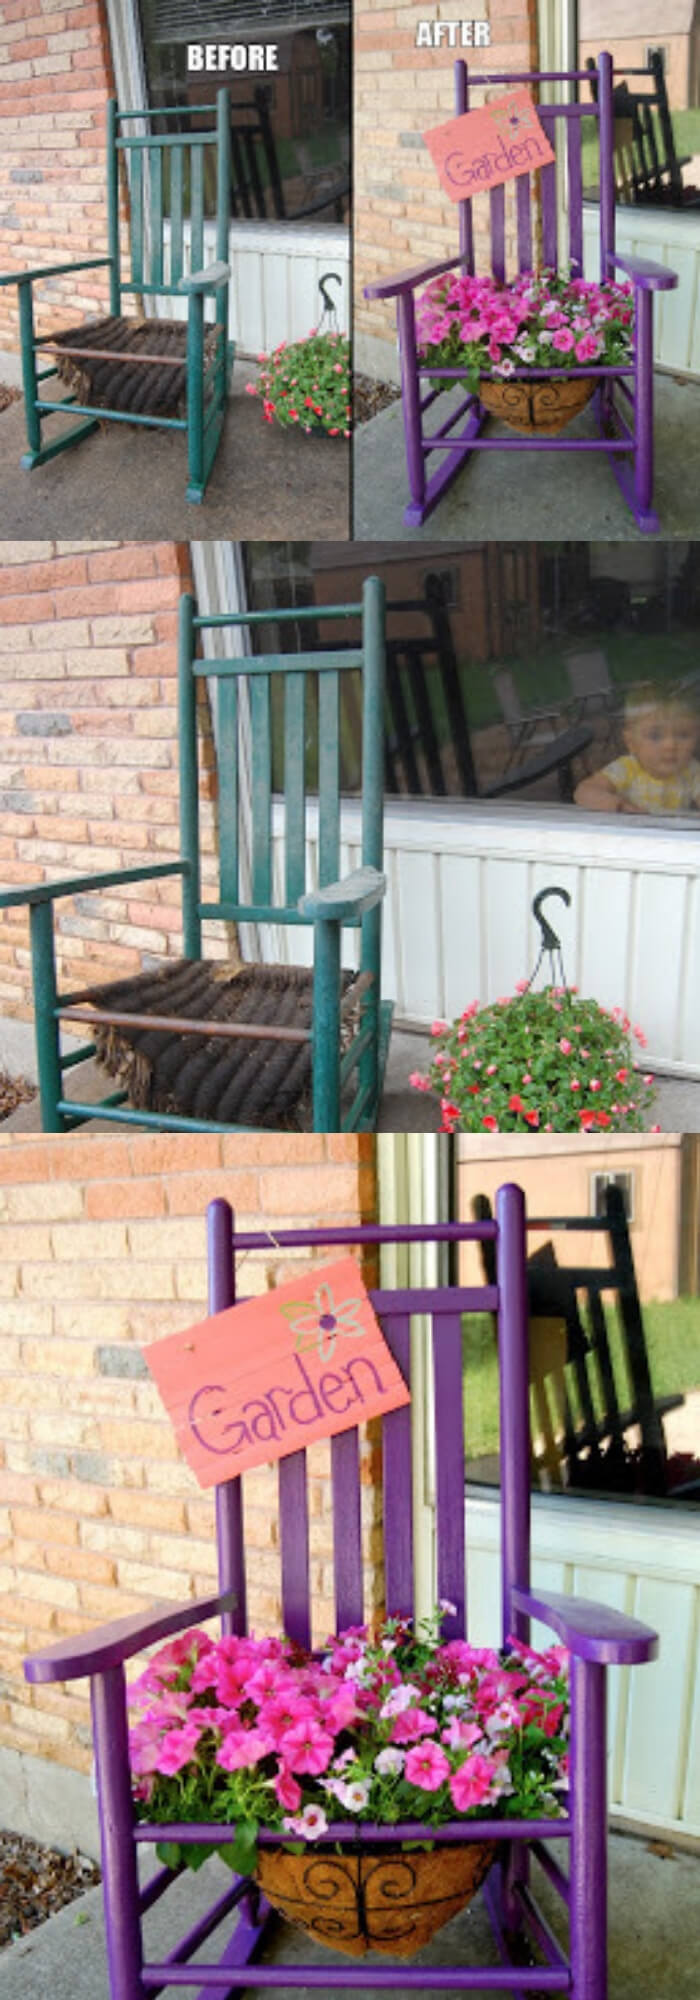 The rocking chair planter (before and after) | Creative Upcycled DIY Chair Planter Ideas For Your Garden